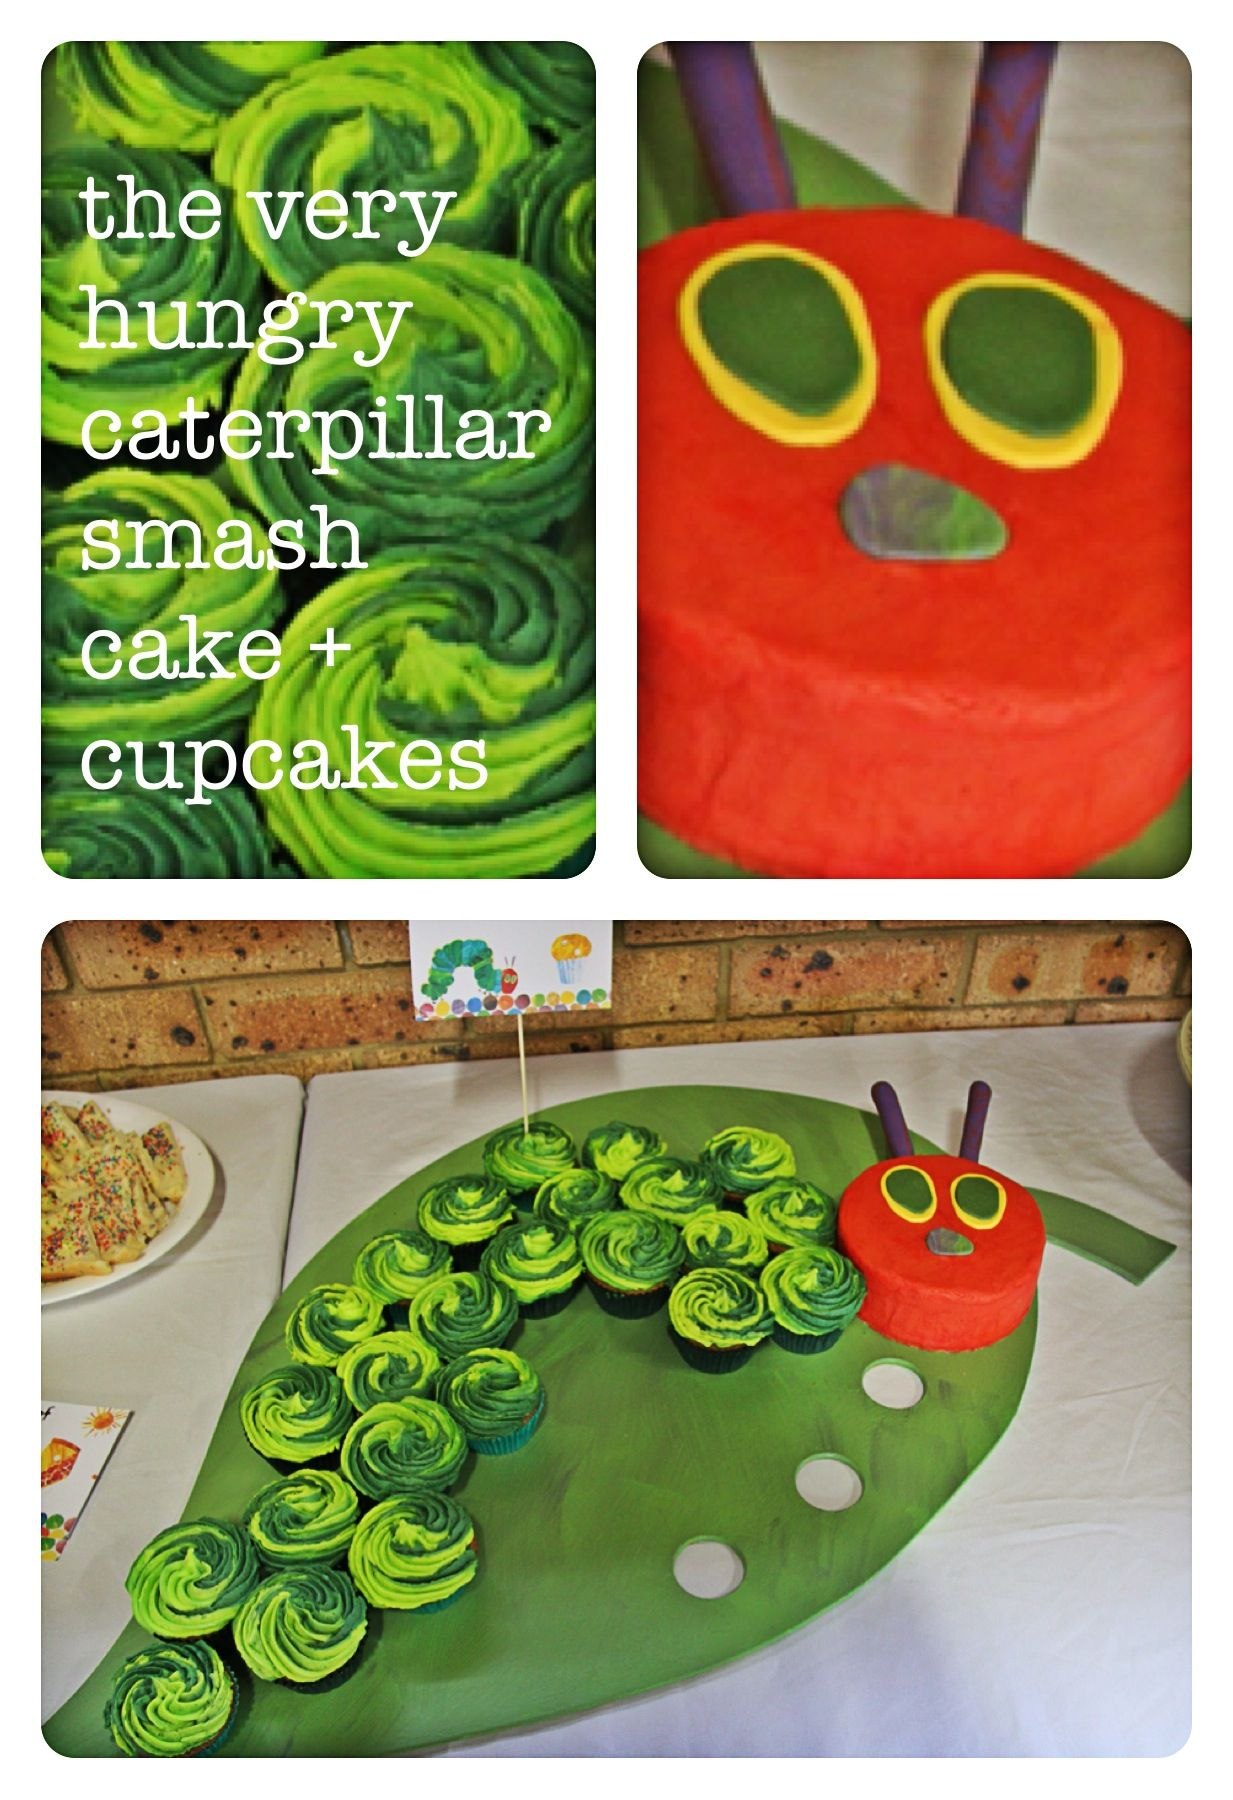 Pin By Olivia Horeczko On First Bday Hungry Caterpillar Party Hungry Caterpillar Birthday Hungry Caterpillar Cupcakes